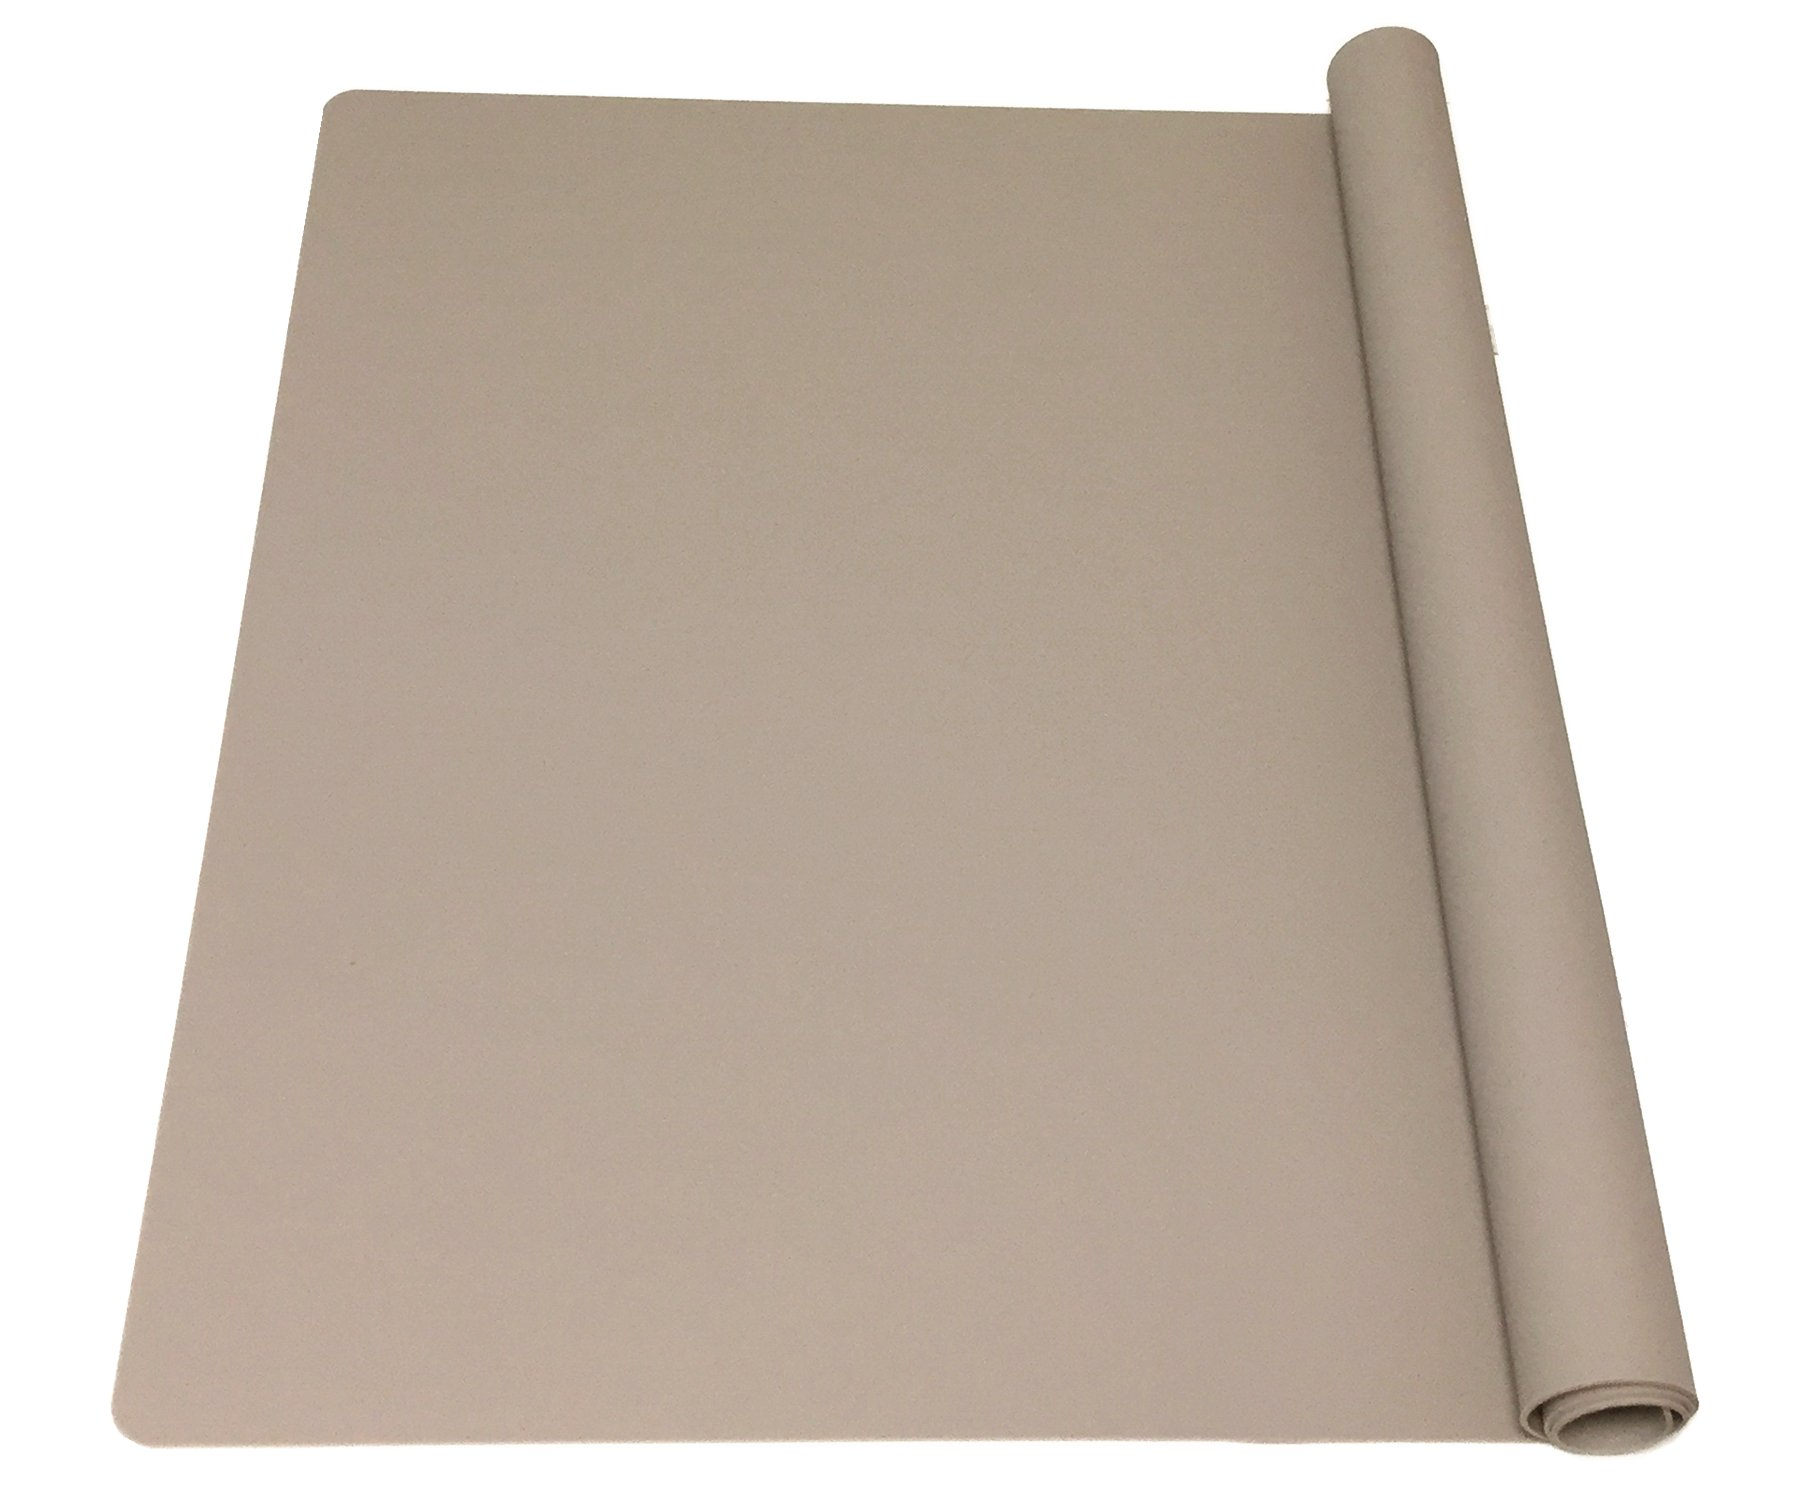 EPHome Extra Large Multipurpose Silicone Nonstick Pastry Mat, Heat Resistant Nonskid Table Mat, Countertop Protector, 23.6''15.75'' (XL, Taupe)